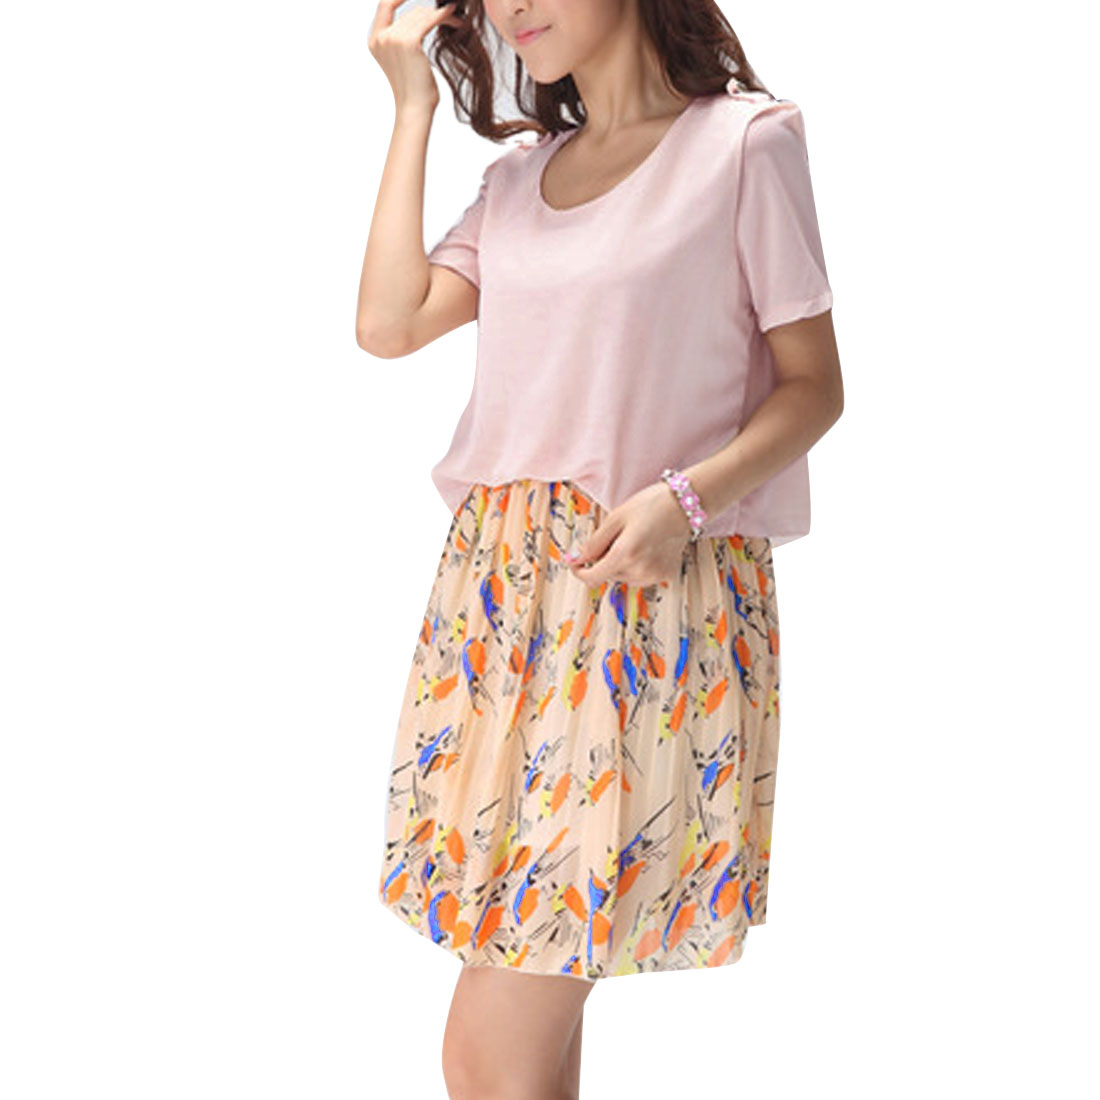 Lady Short Sleeve Semi-sheer Birds Pattern Lavender Pleated Dress XS